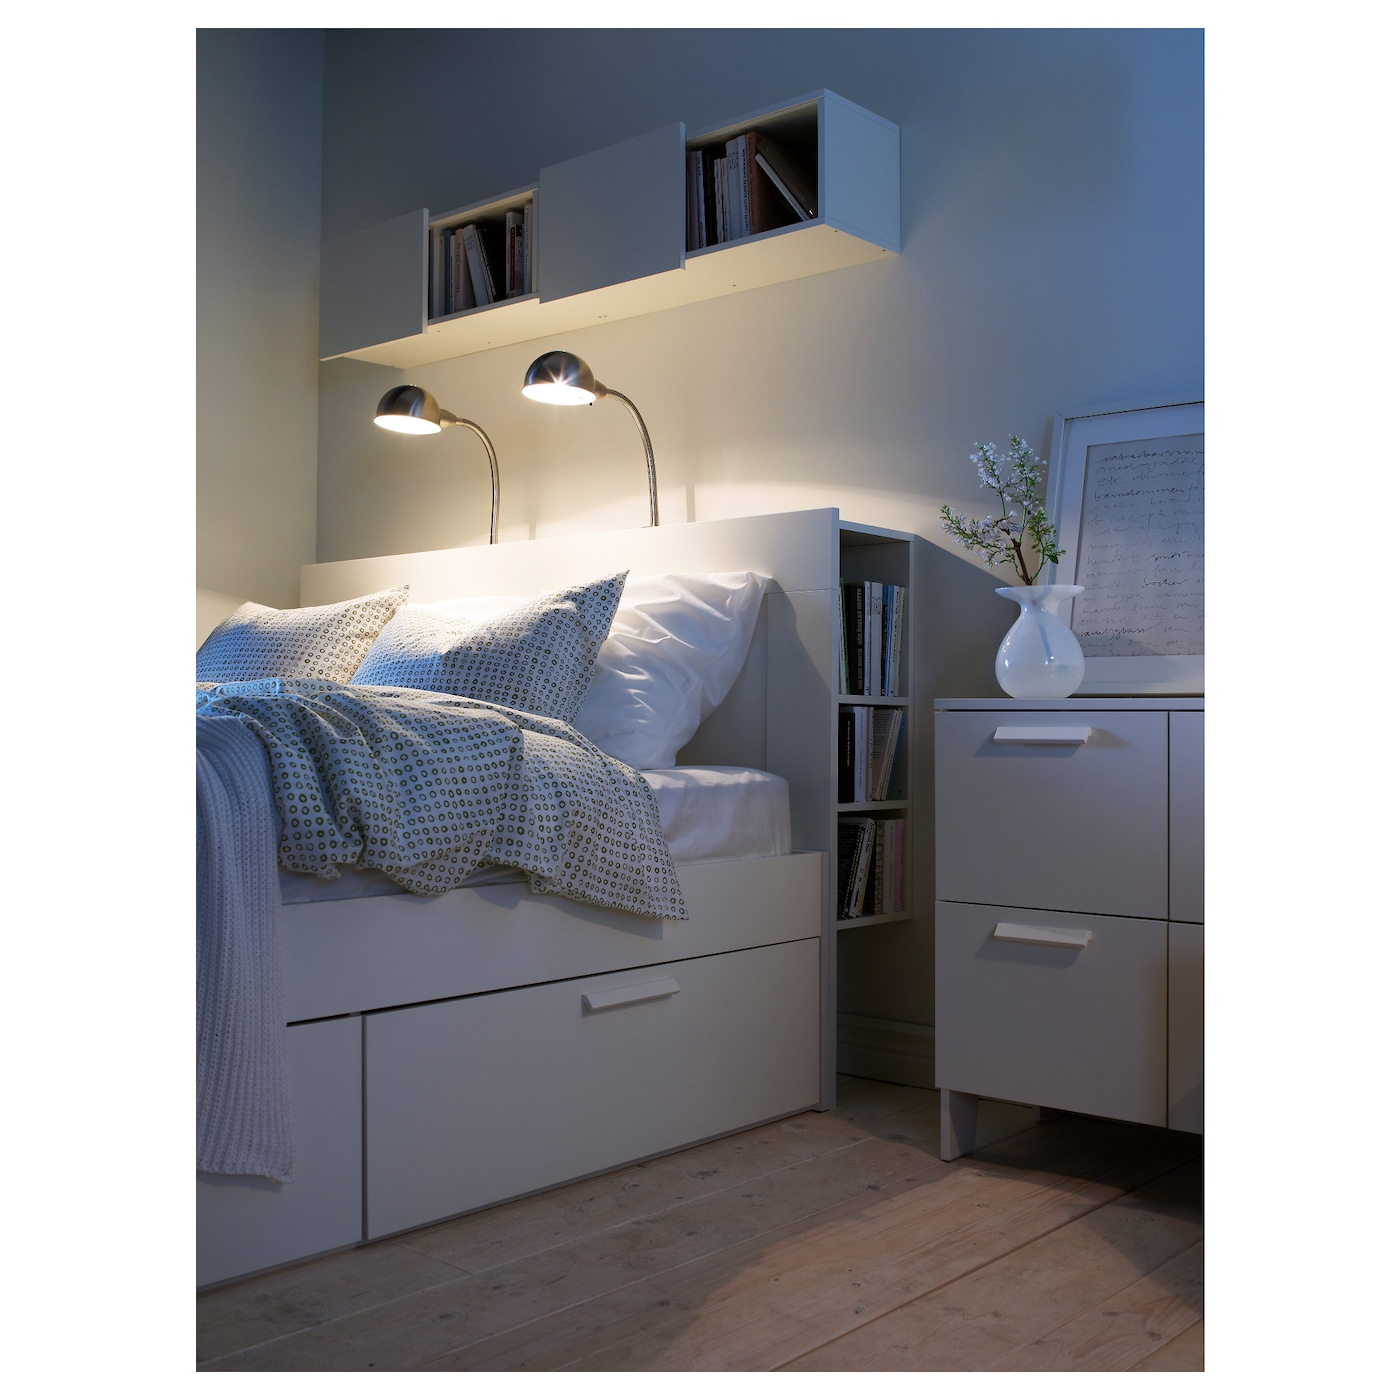 brimnes t te de lit avec rangement blanc 160 cm ikea. Black Bedroom Furniture Sets. Home Design Ideas